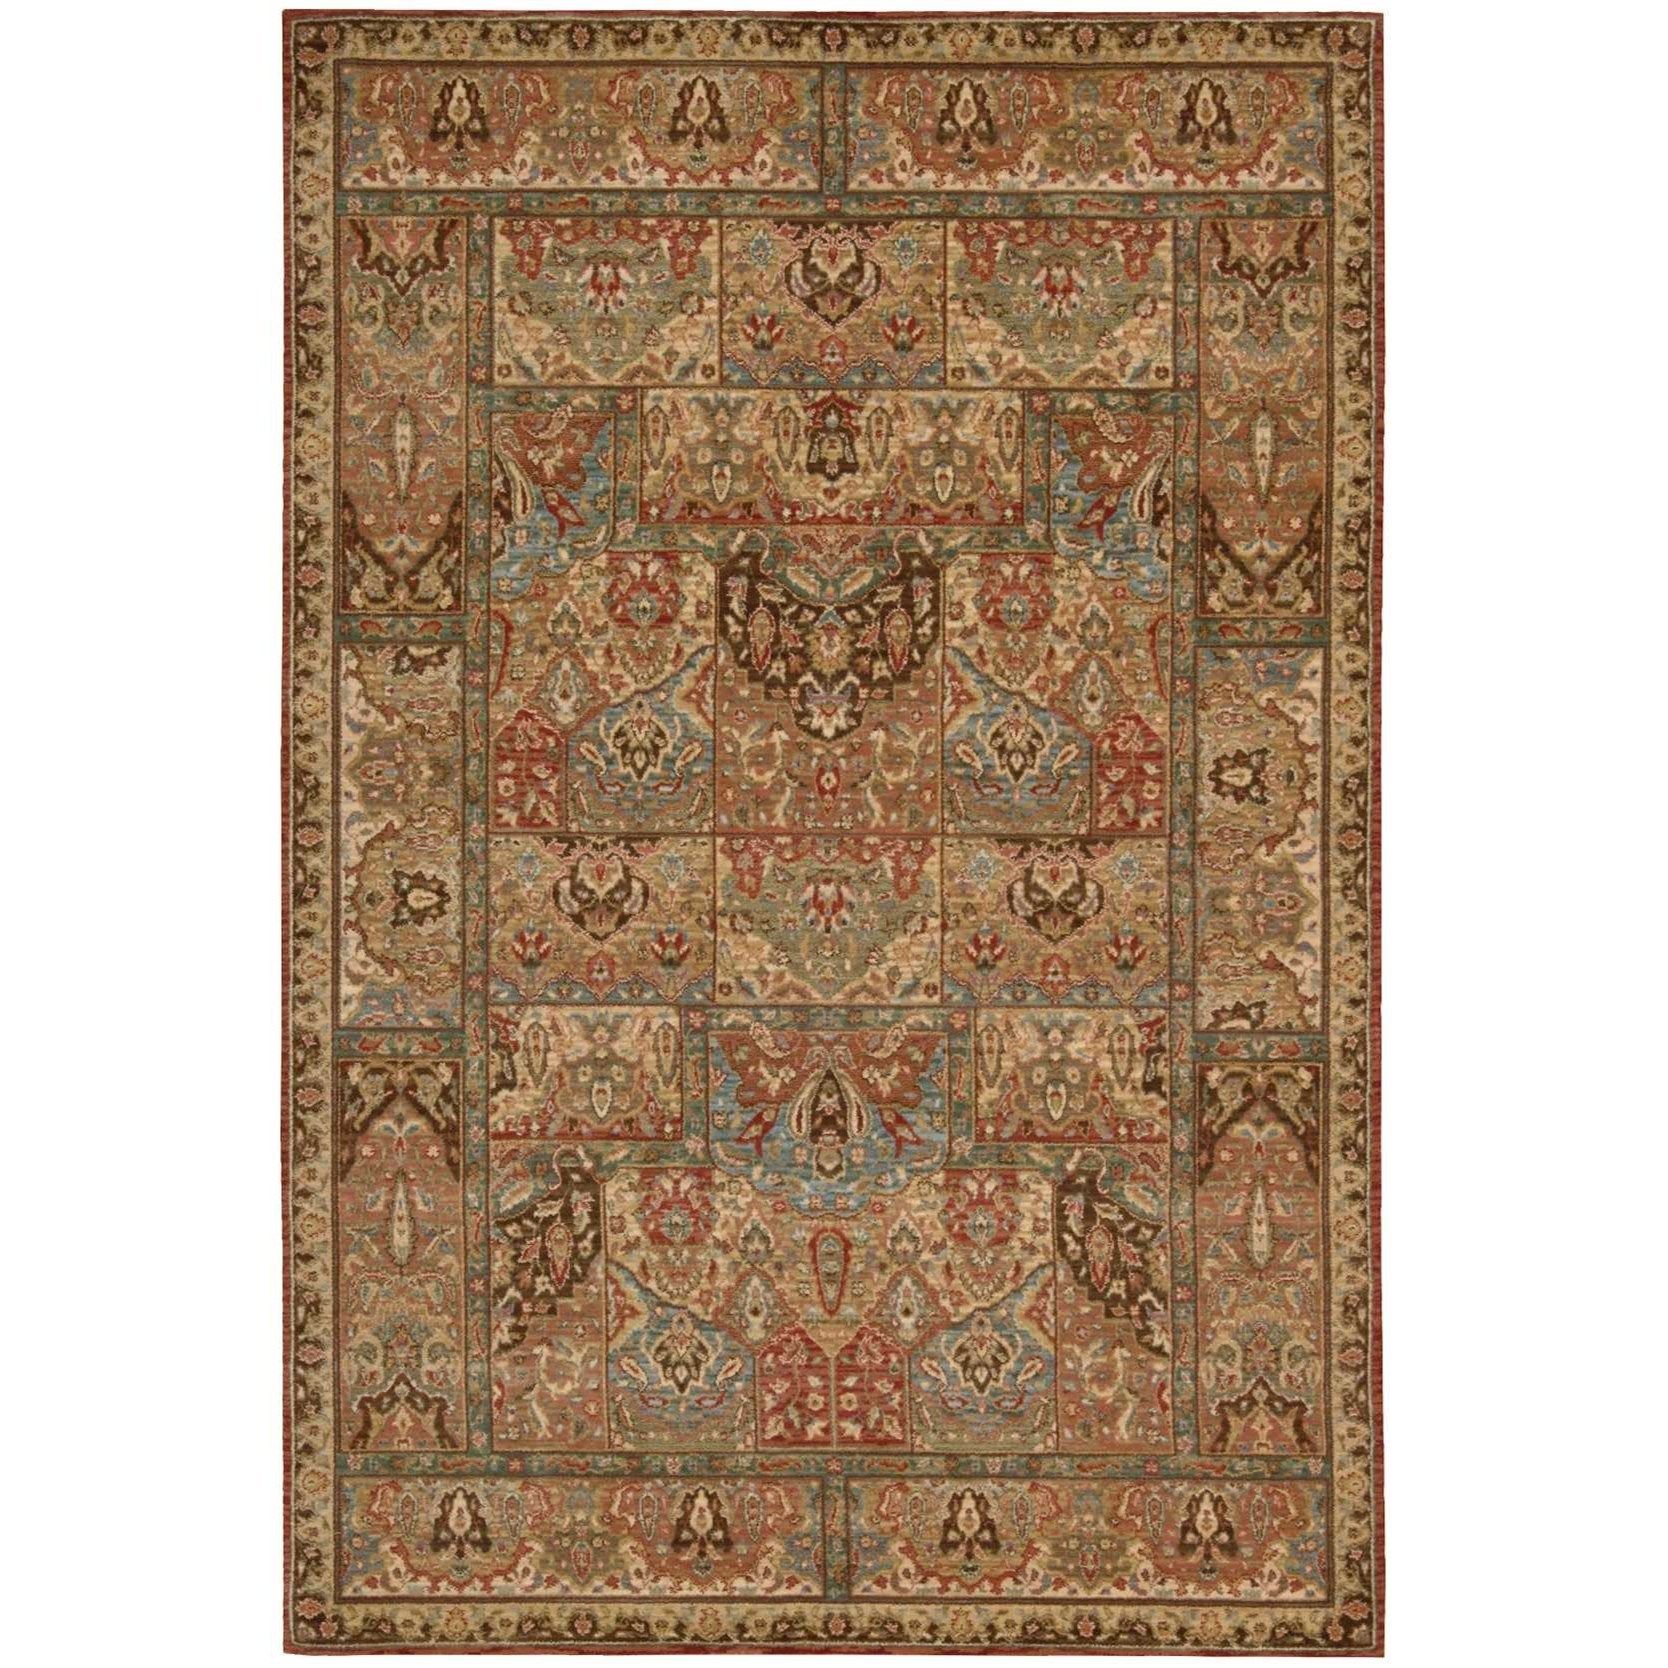 "Living Treasures 3'6"" x 5'6"" Multicolor Rectangle Rug by Nourison at Home Collections Furniture"